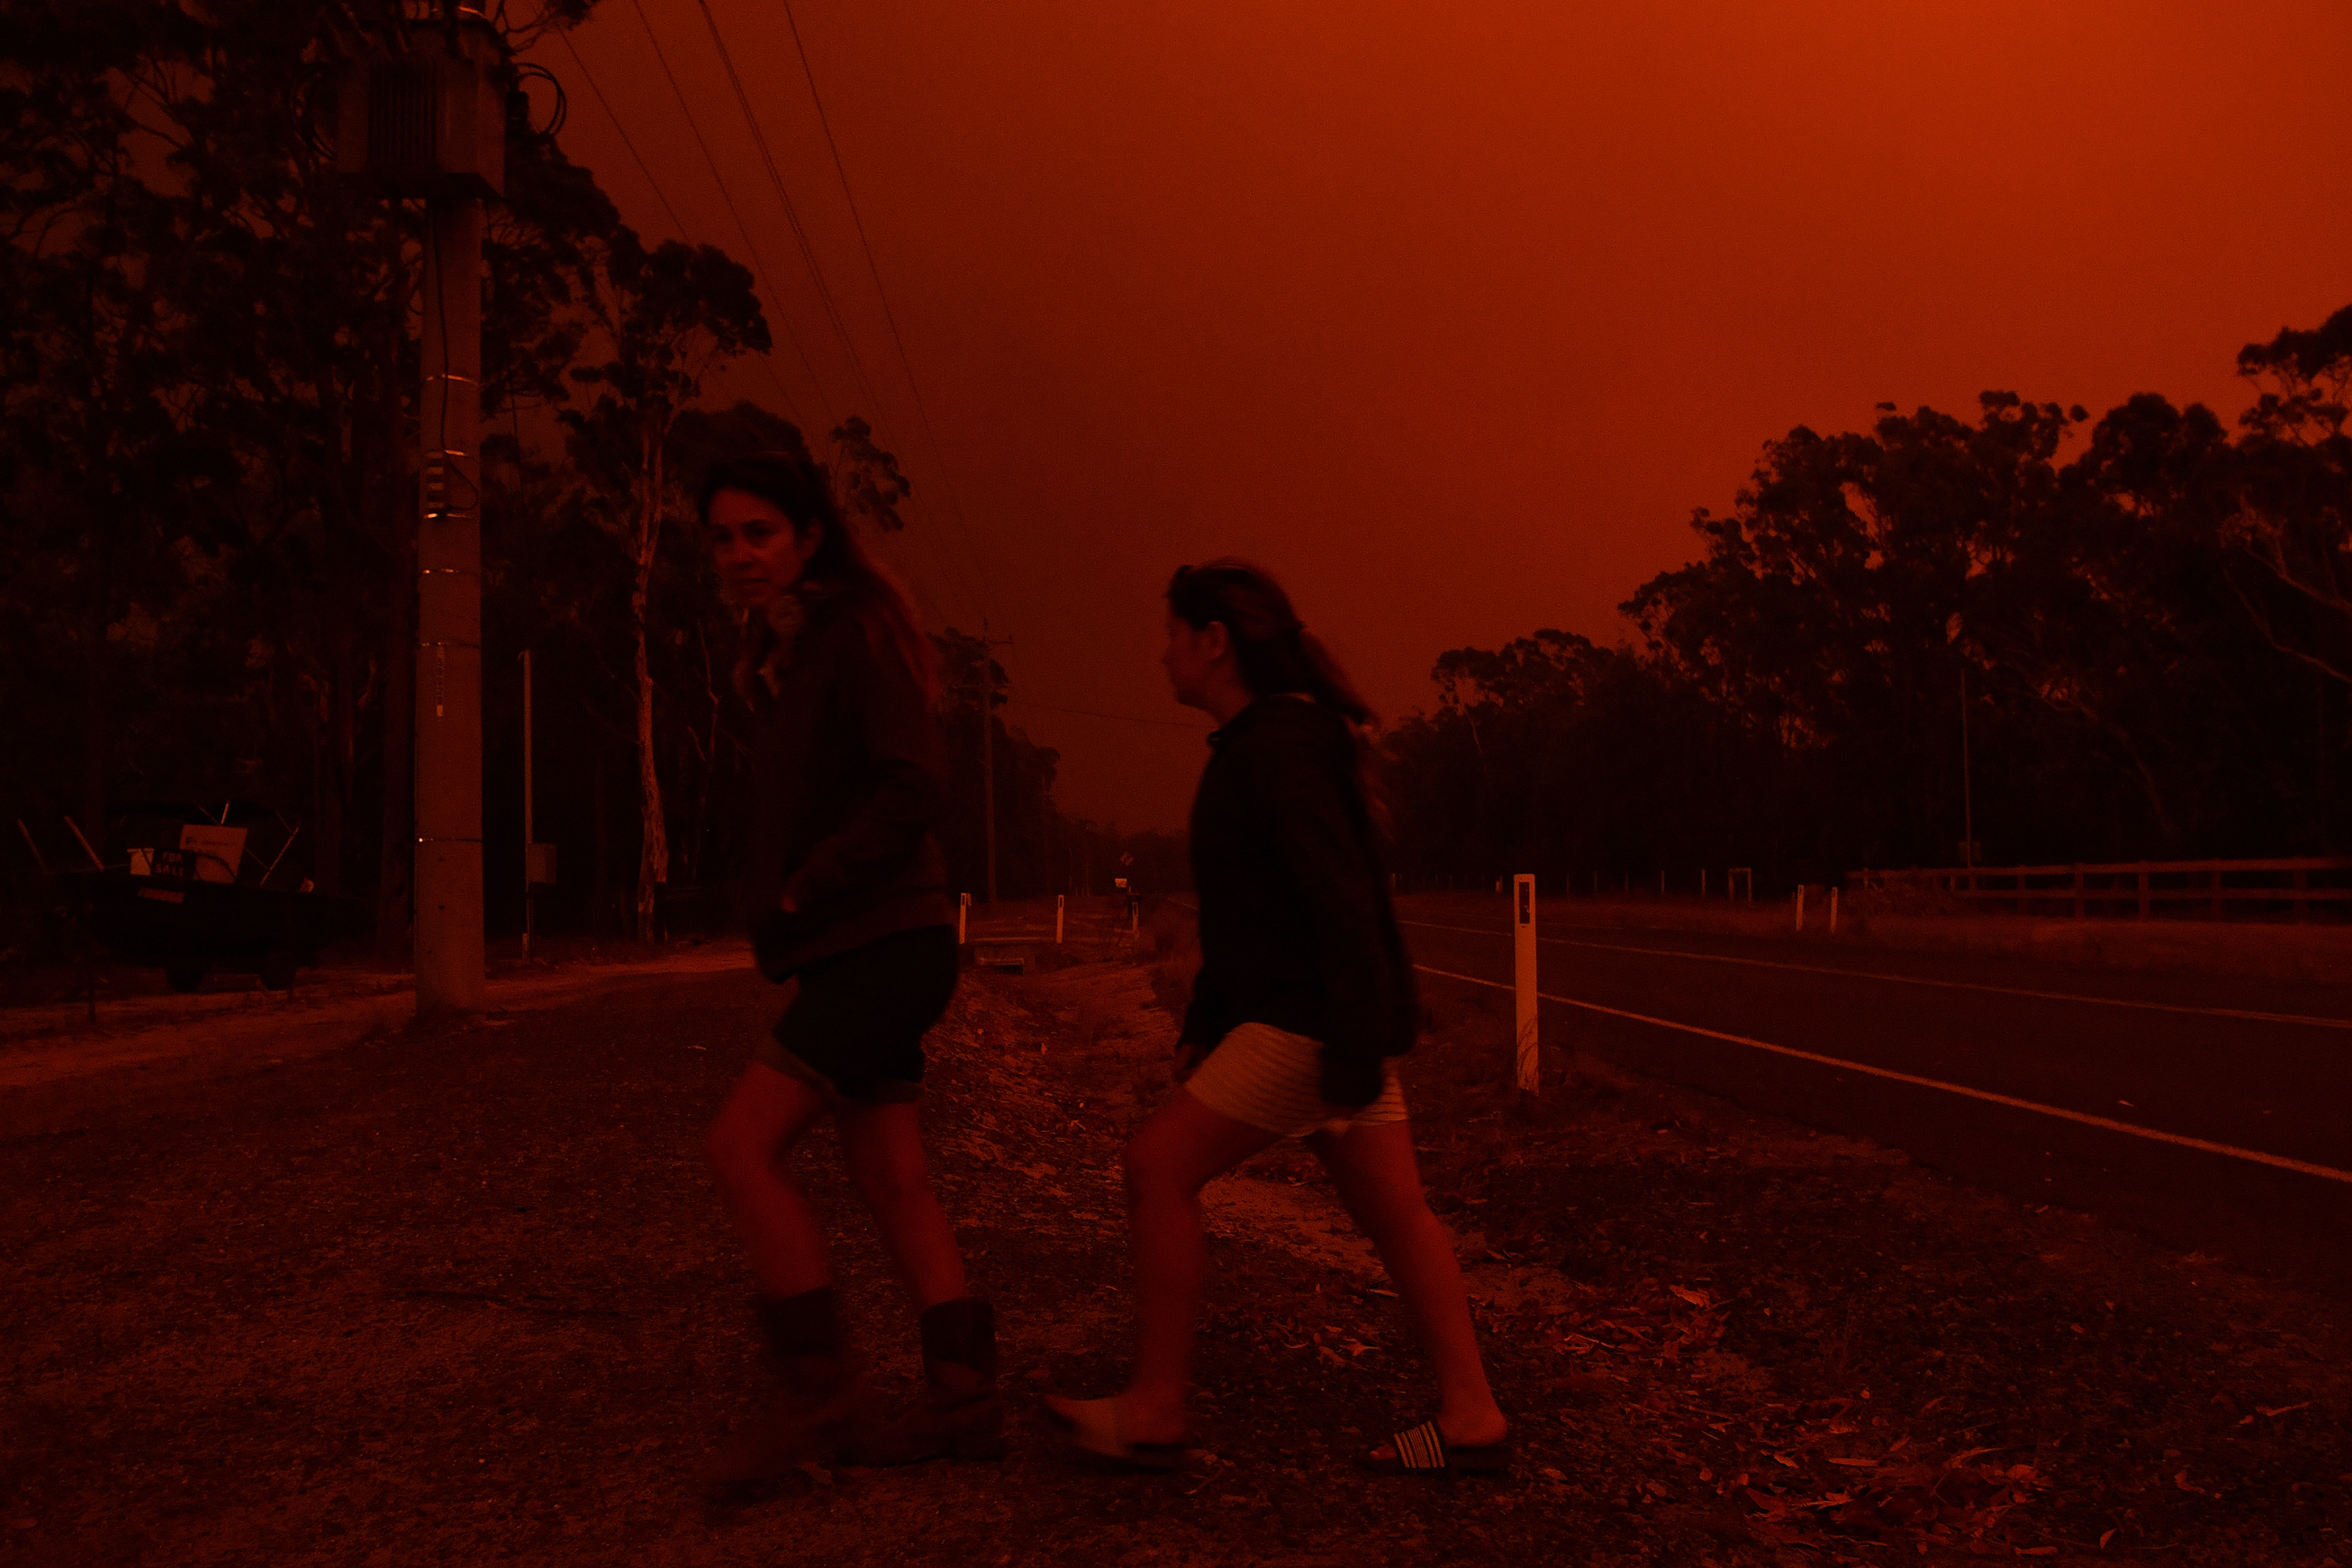 Australia had plans to prevent fire blackouts. They just weren't ready in time.